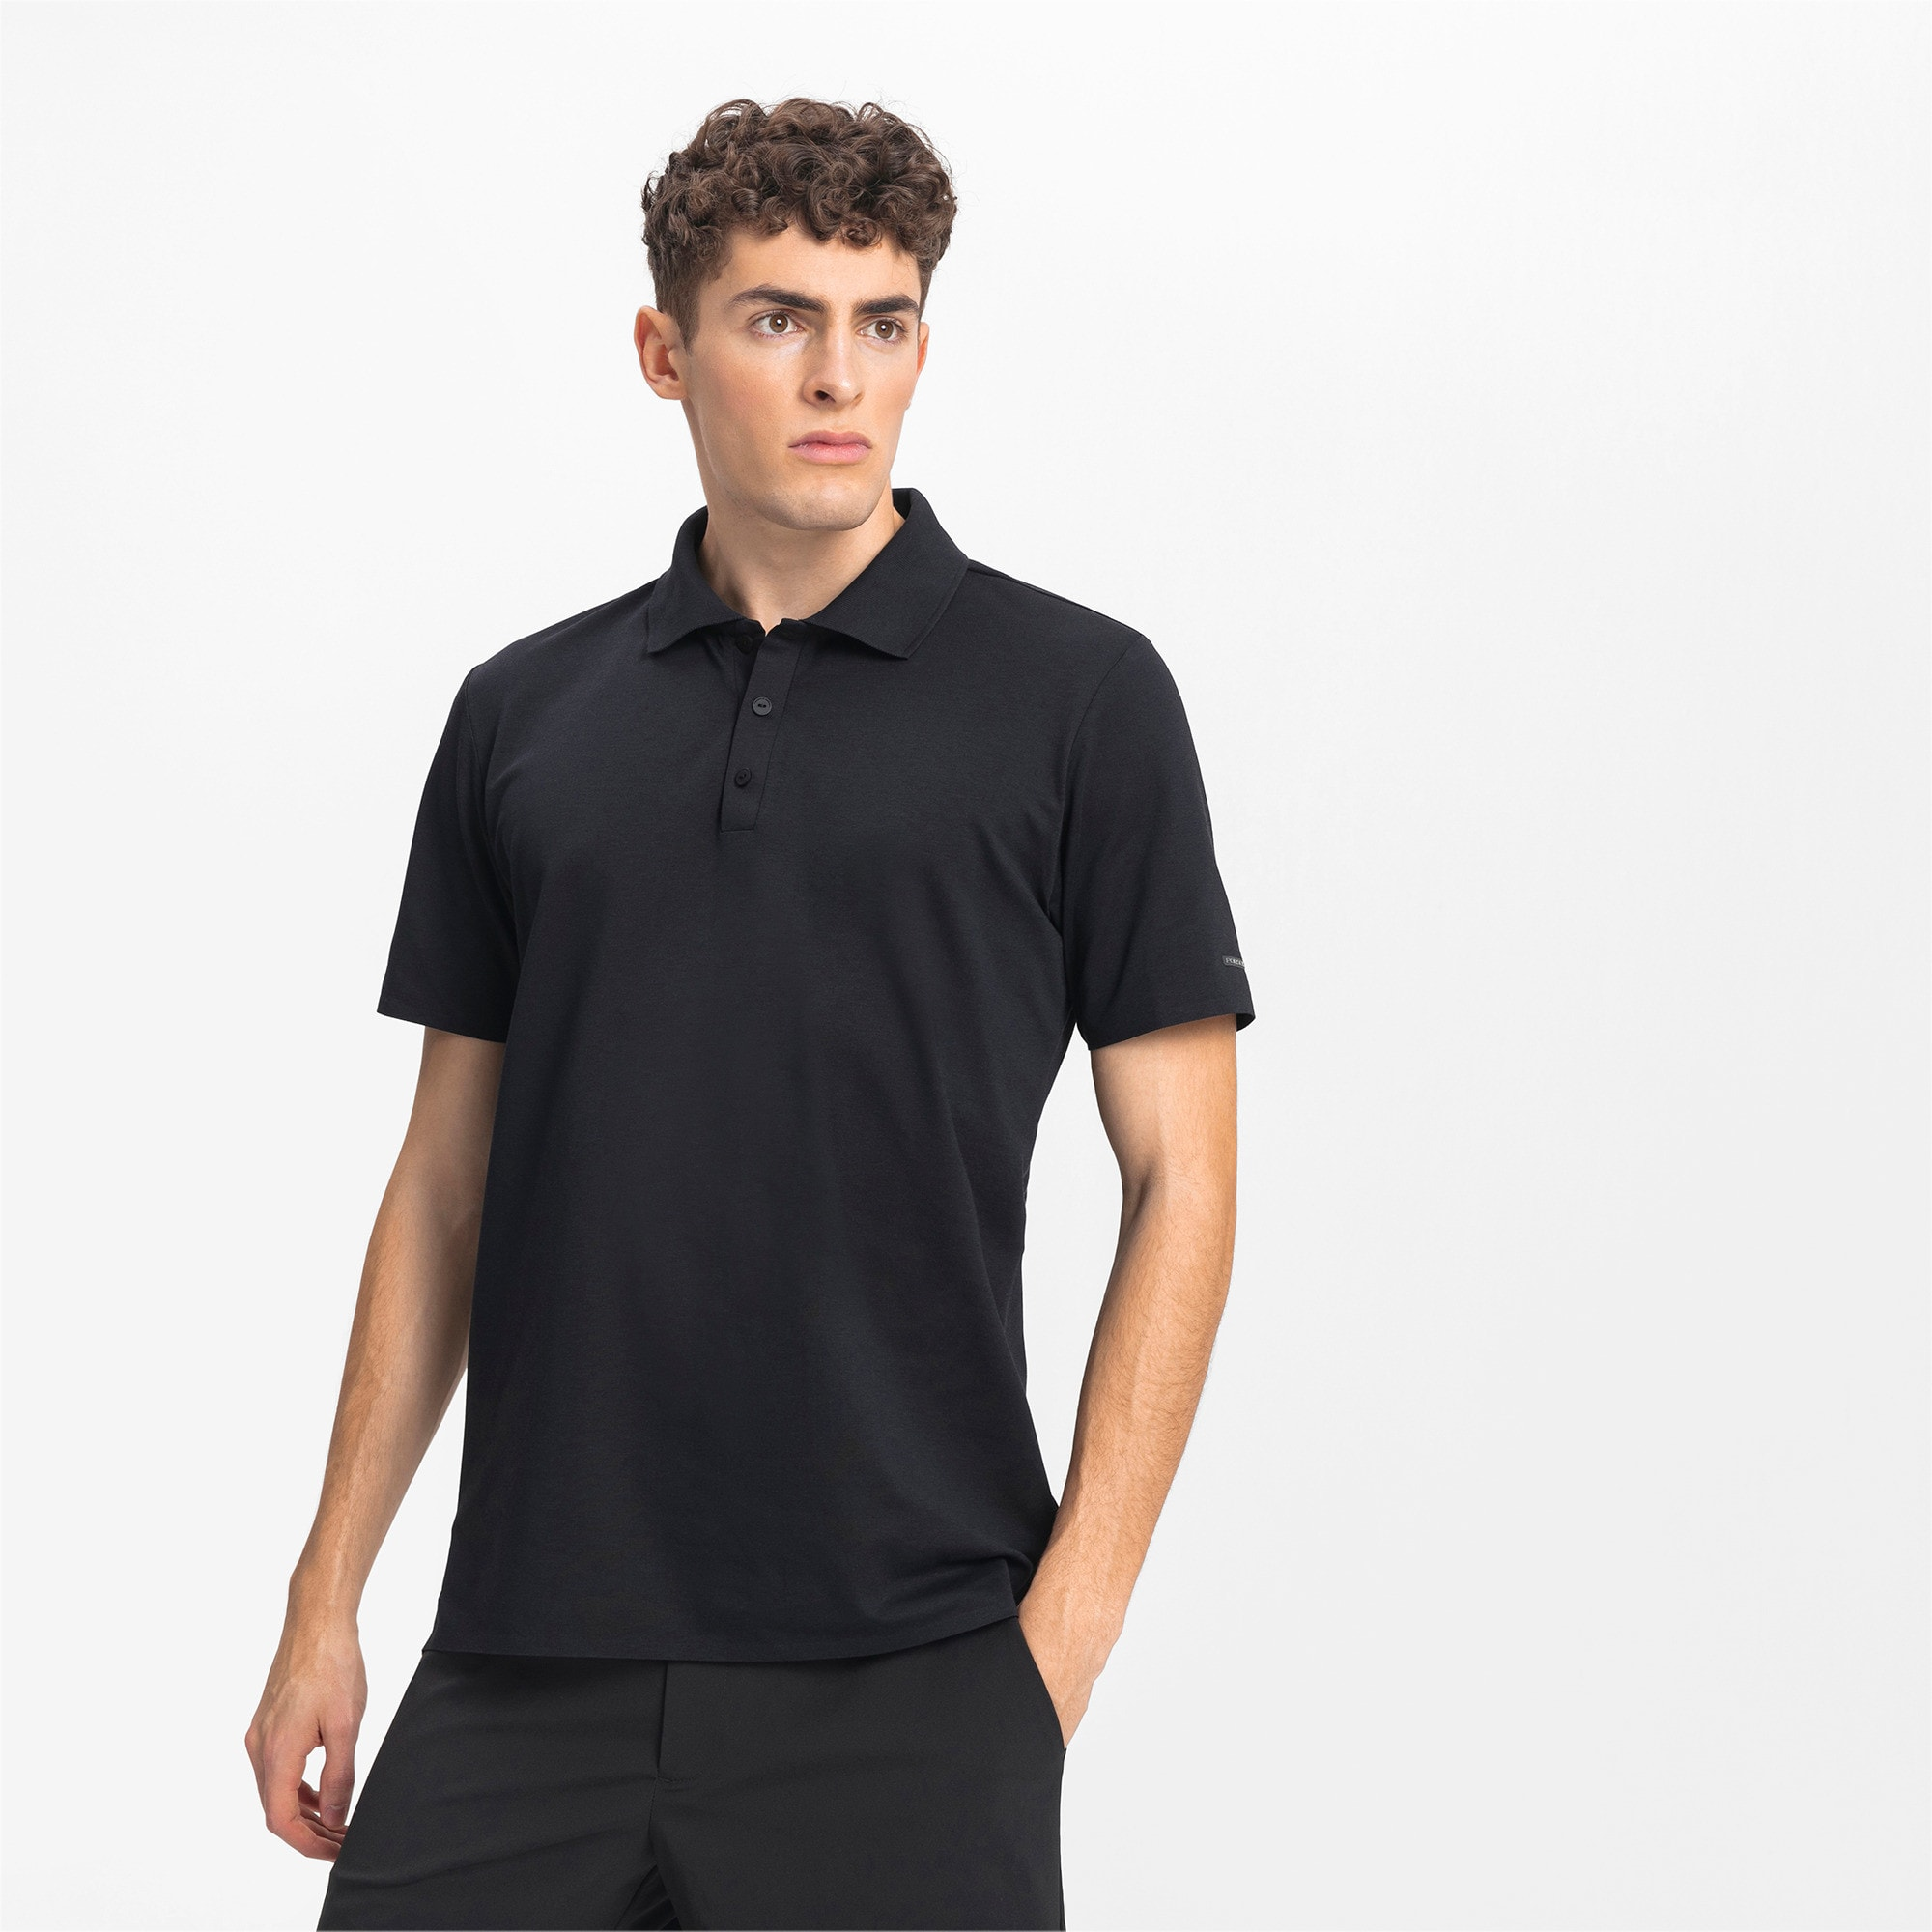 Men's Motorsports Polo, Jet Black, large